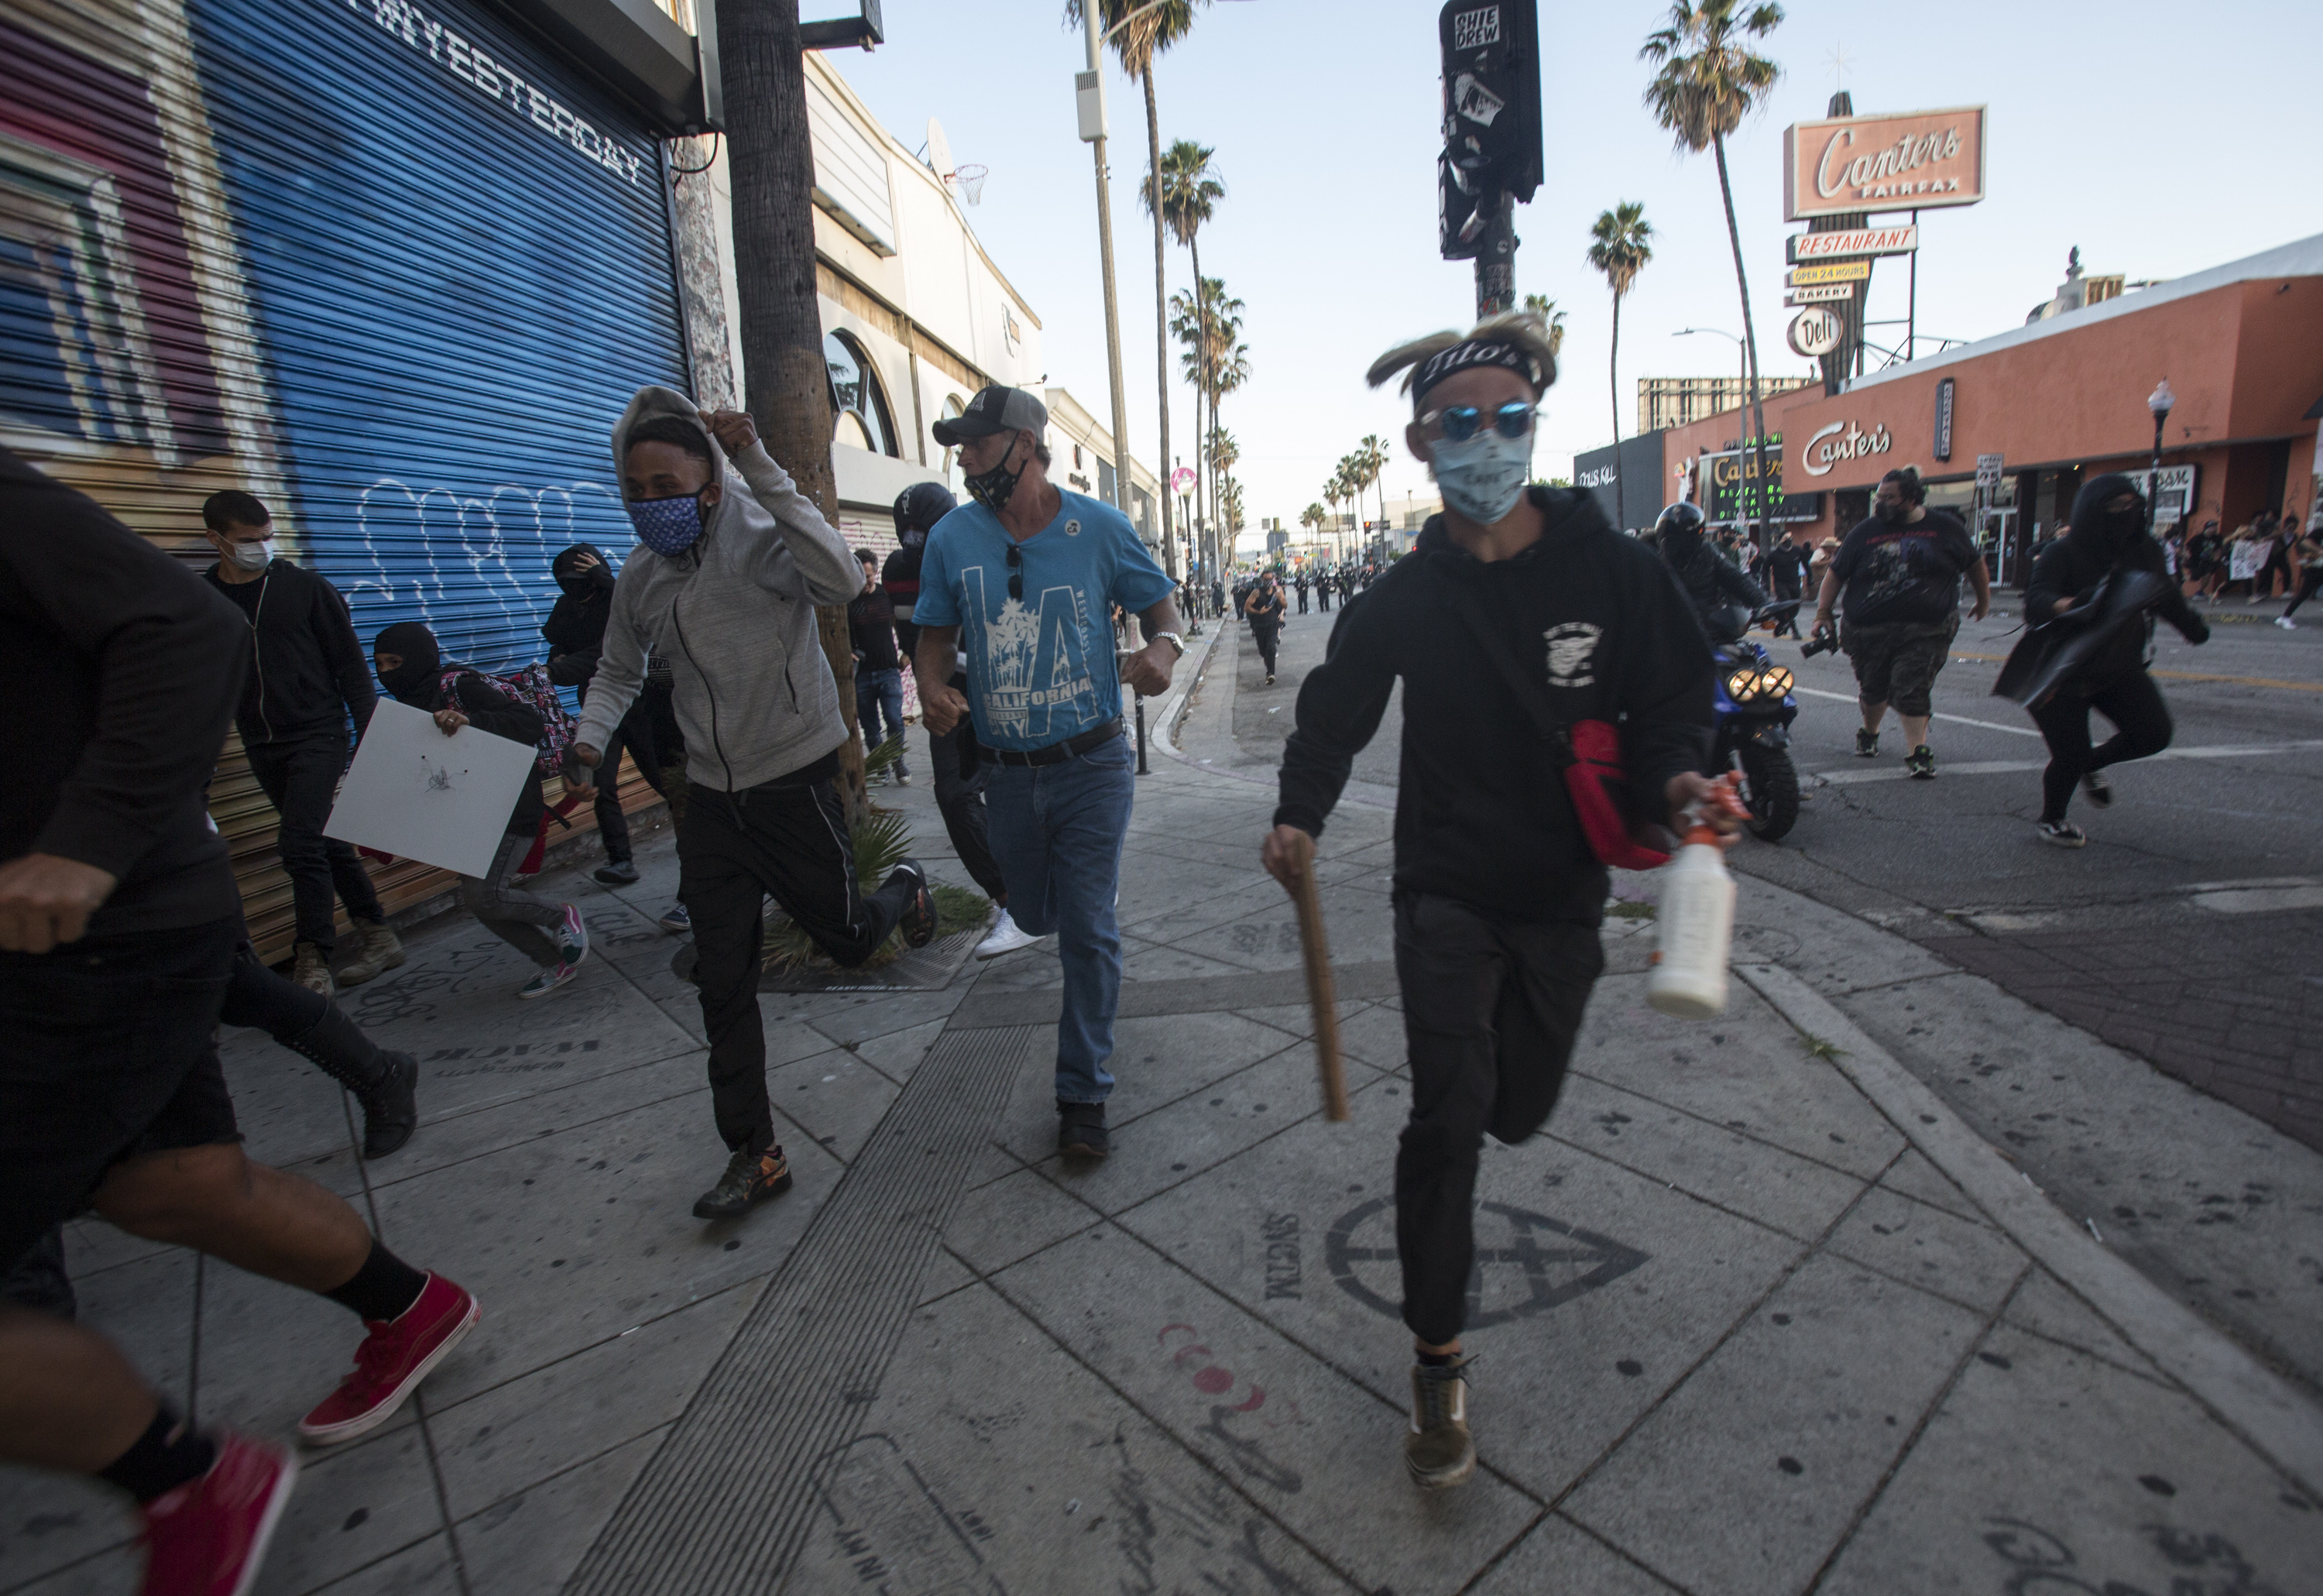 Protesters run as police officers fire rubber bullets during a protest over the death of George Floyd, a handcuffed black man in police custody in Minneapolis, in Los Angeles, Saturday, May 30, 2020. Photo: AP